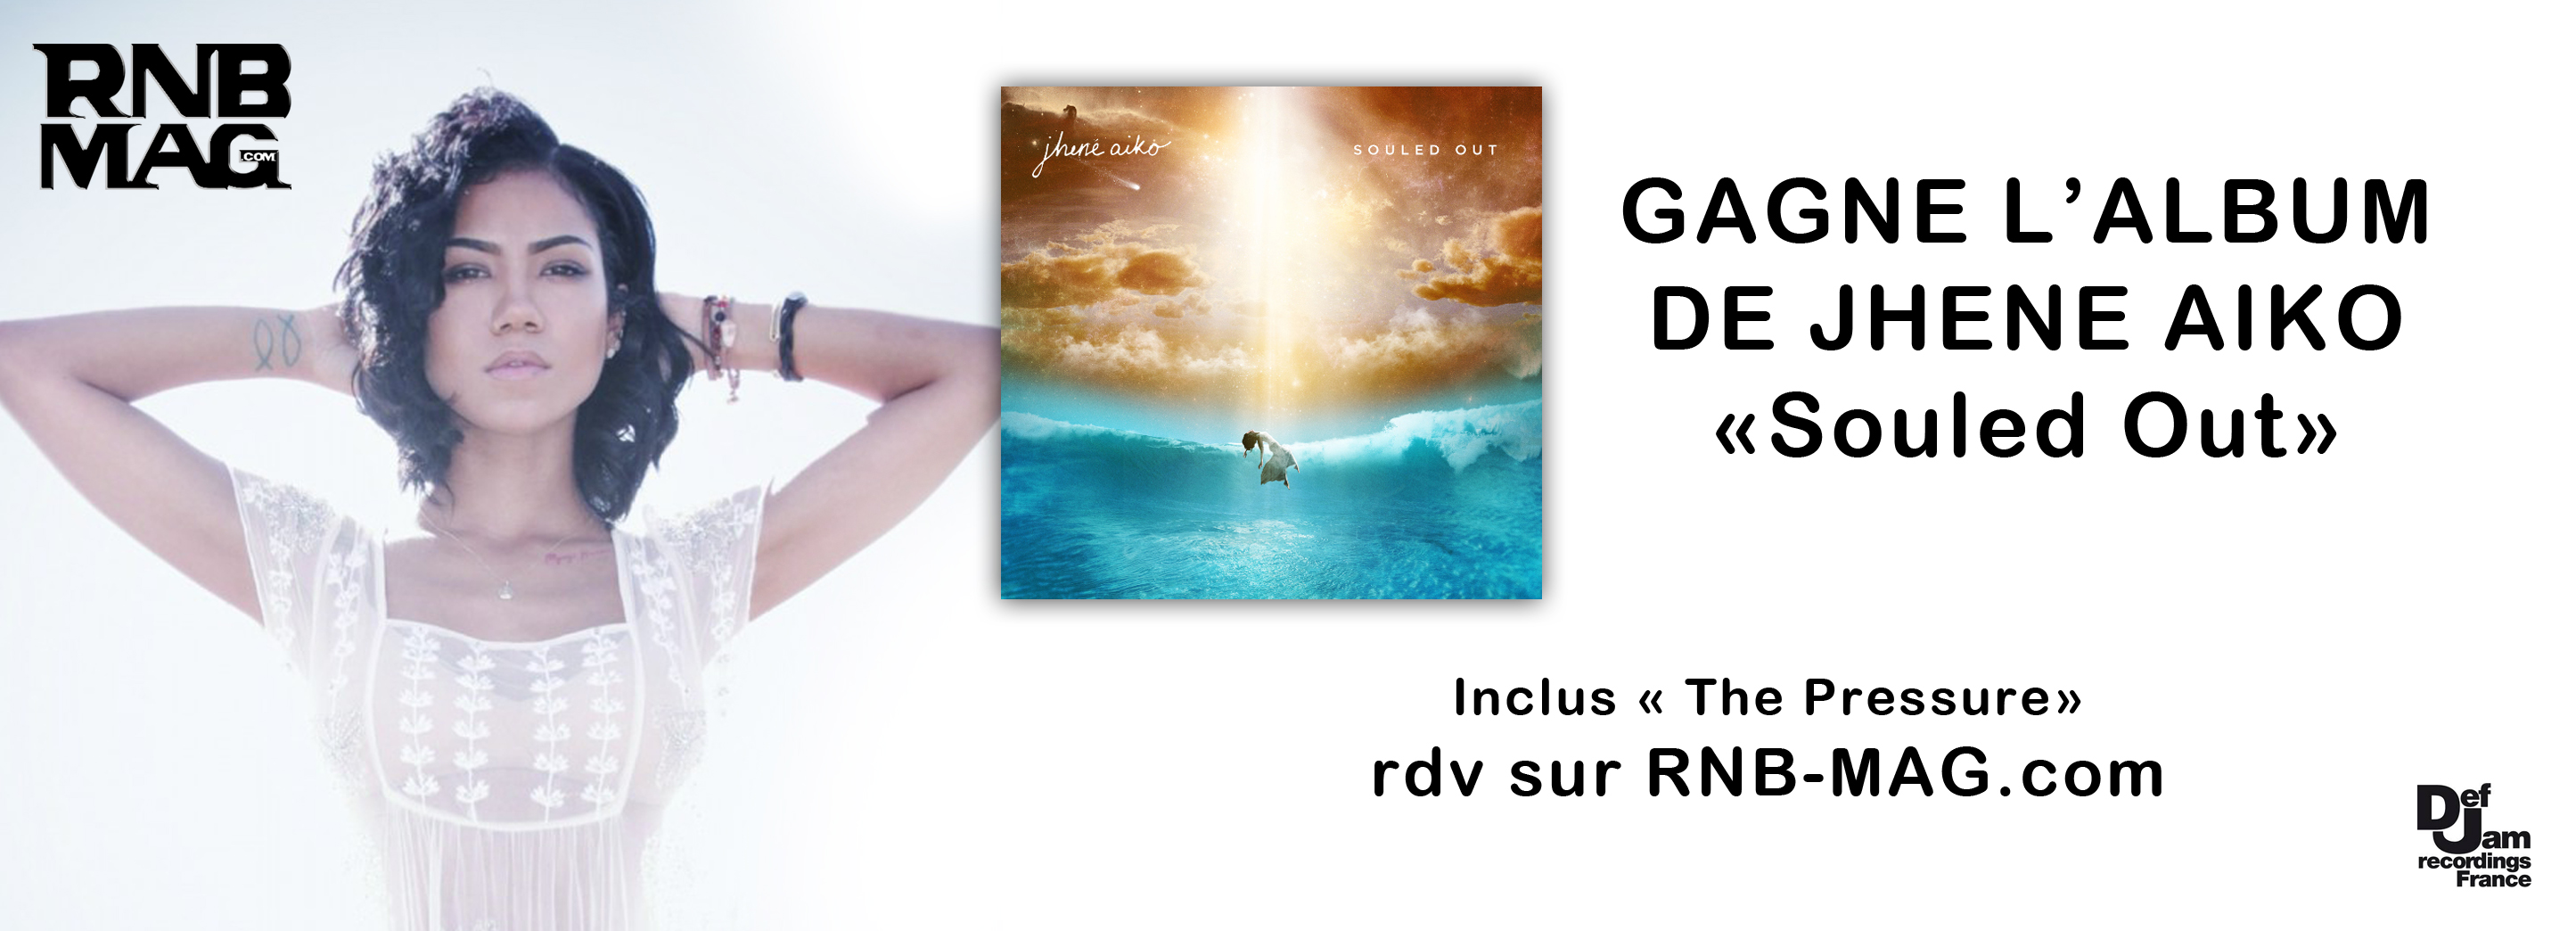 concours-jhene-aiko-rnbmag2